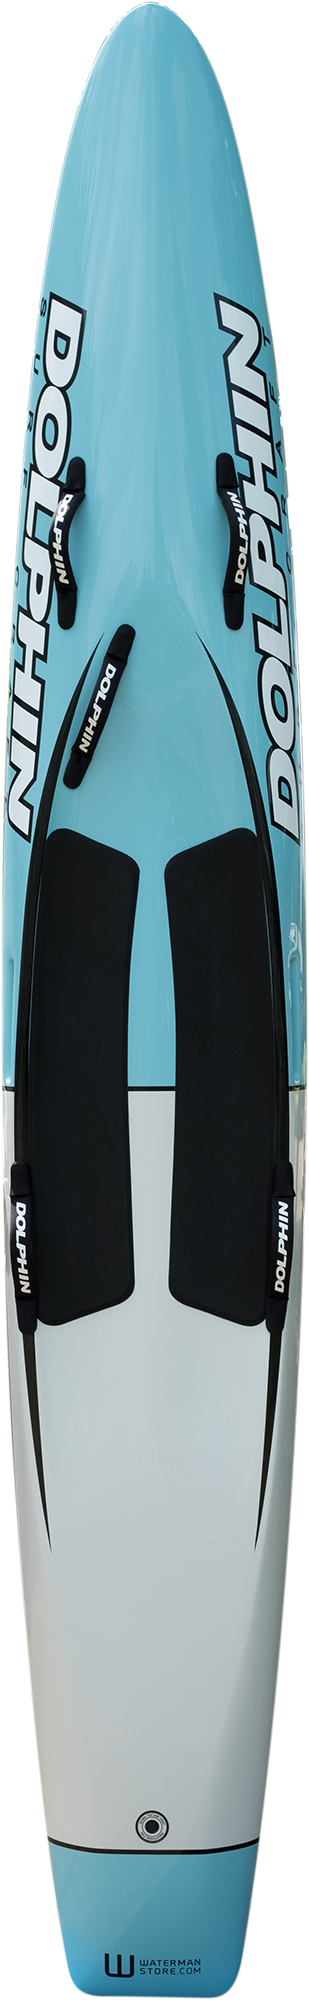 Dolphin Surf Craft 10'6 Race Board - Panel - 100kg (Europe)